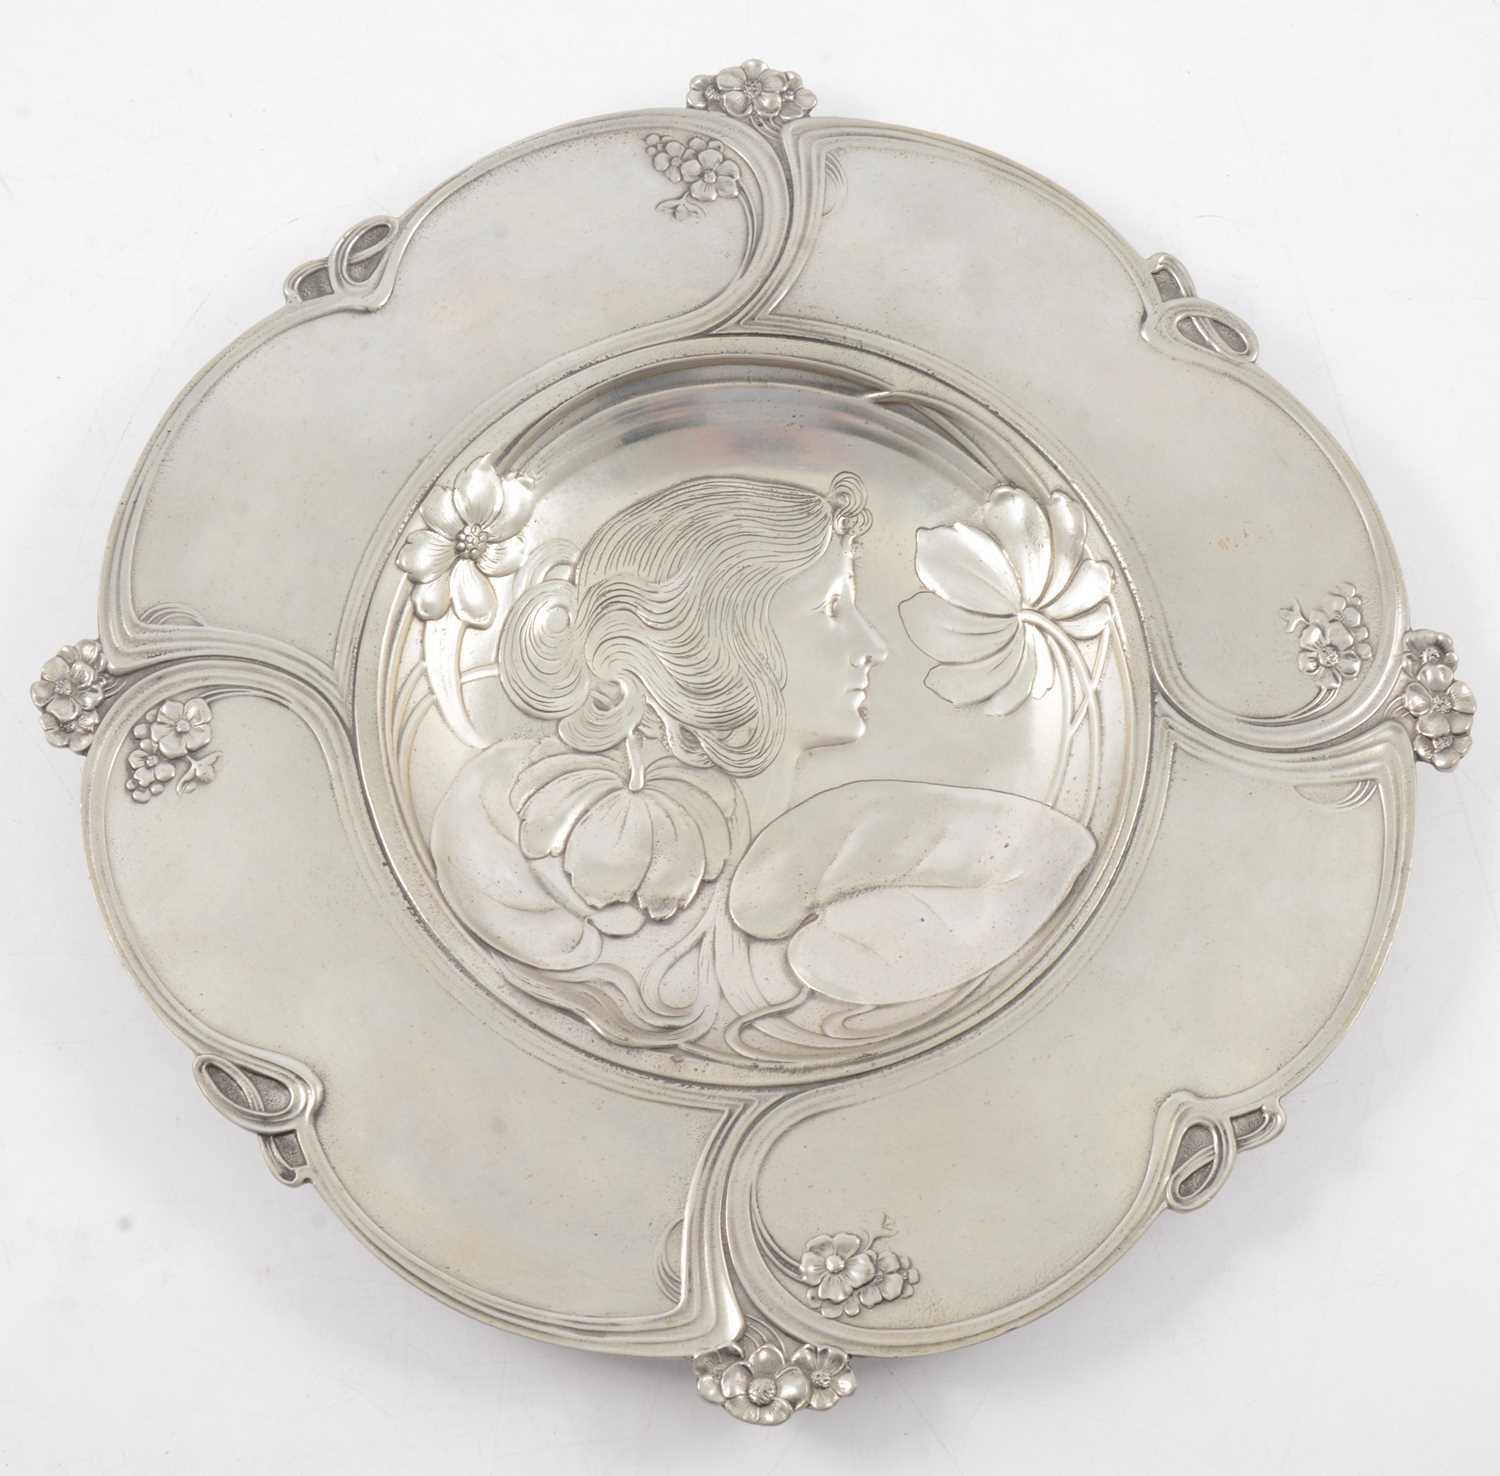 Lot 1006 - Italian Art Nouveau pewter charger, by Achille Gamba, circa 1900